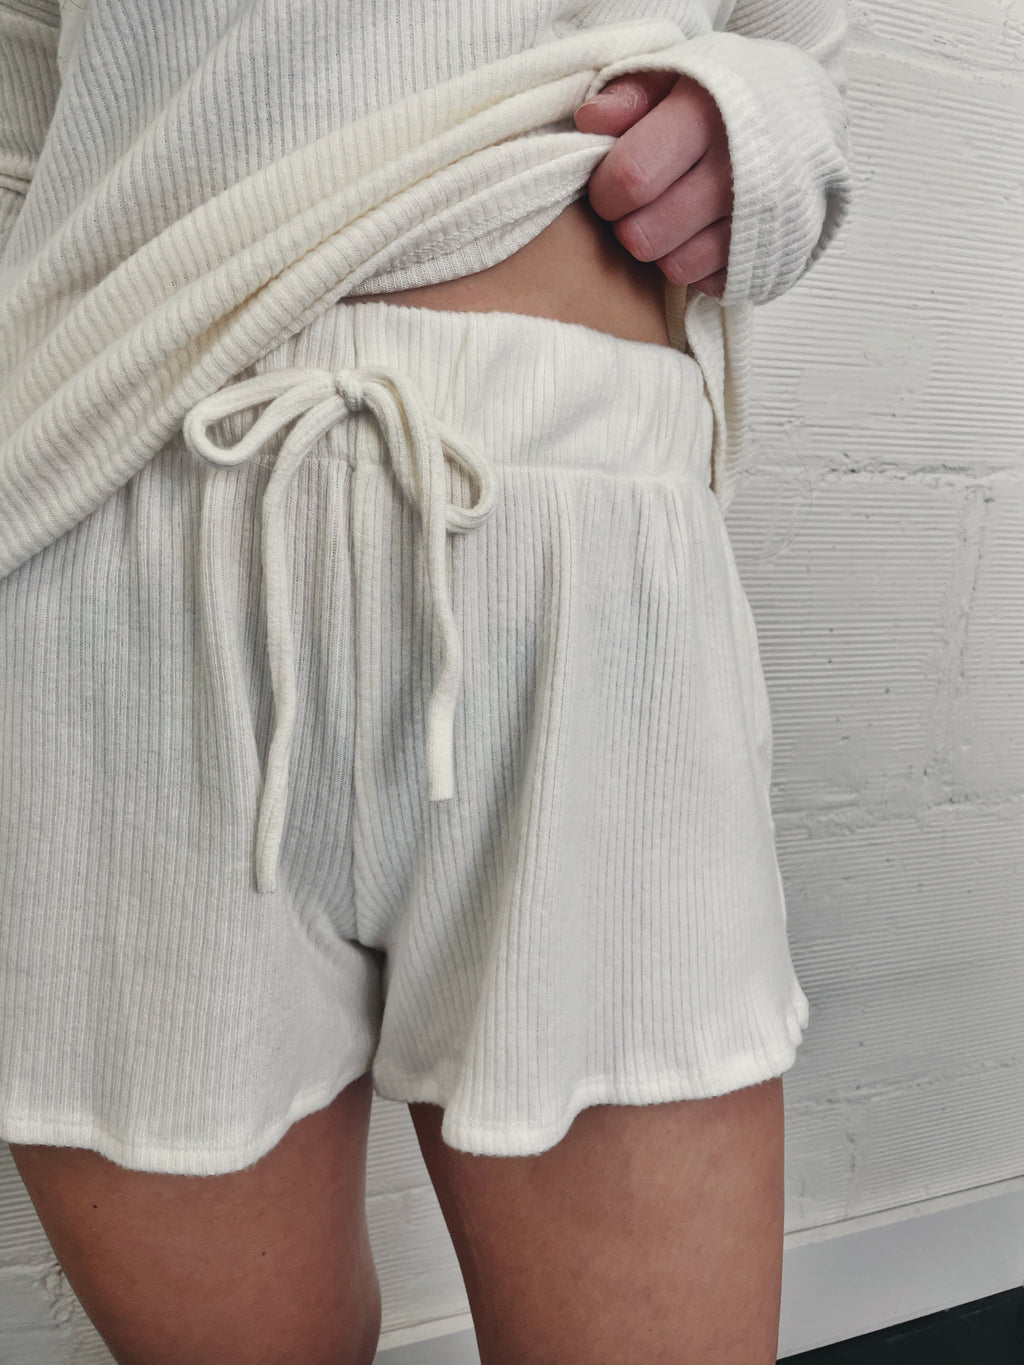 Morning Coffee Shorts - Ivory